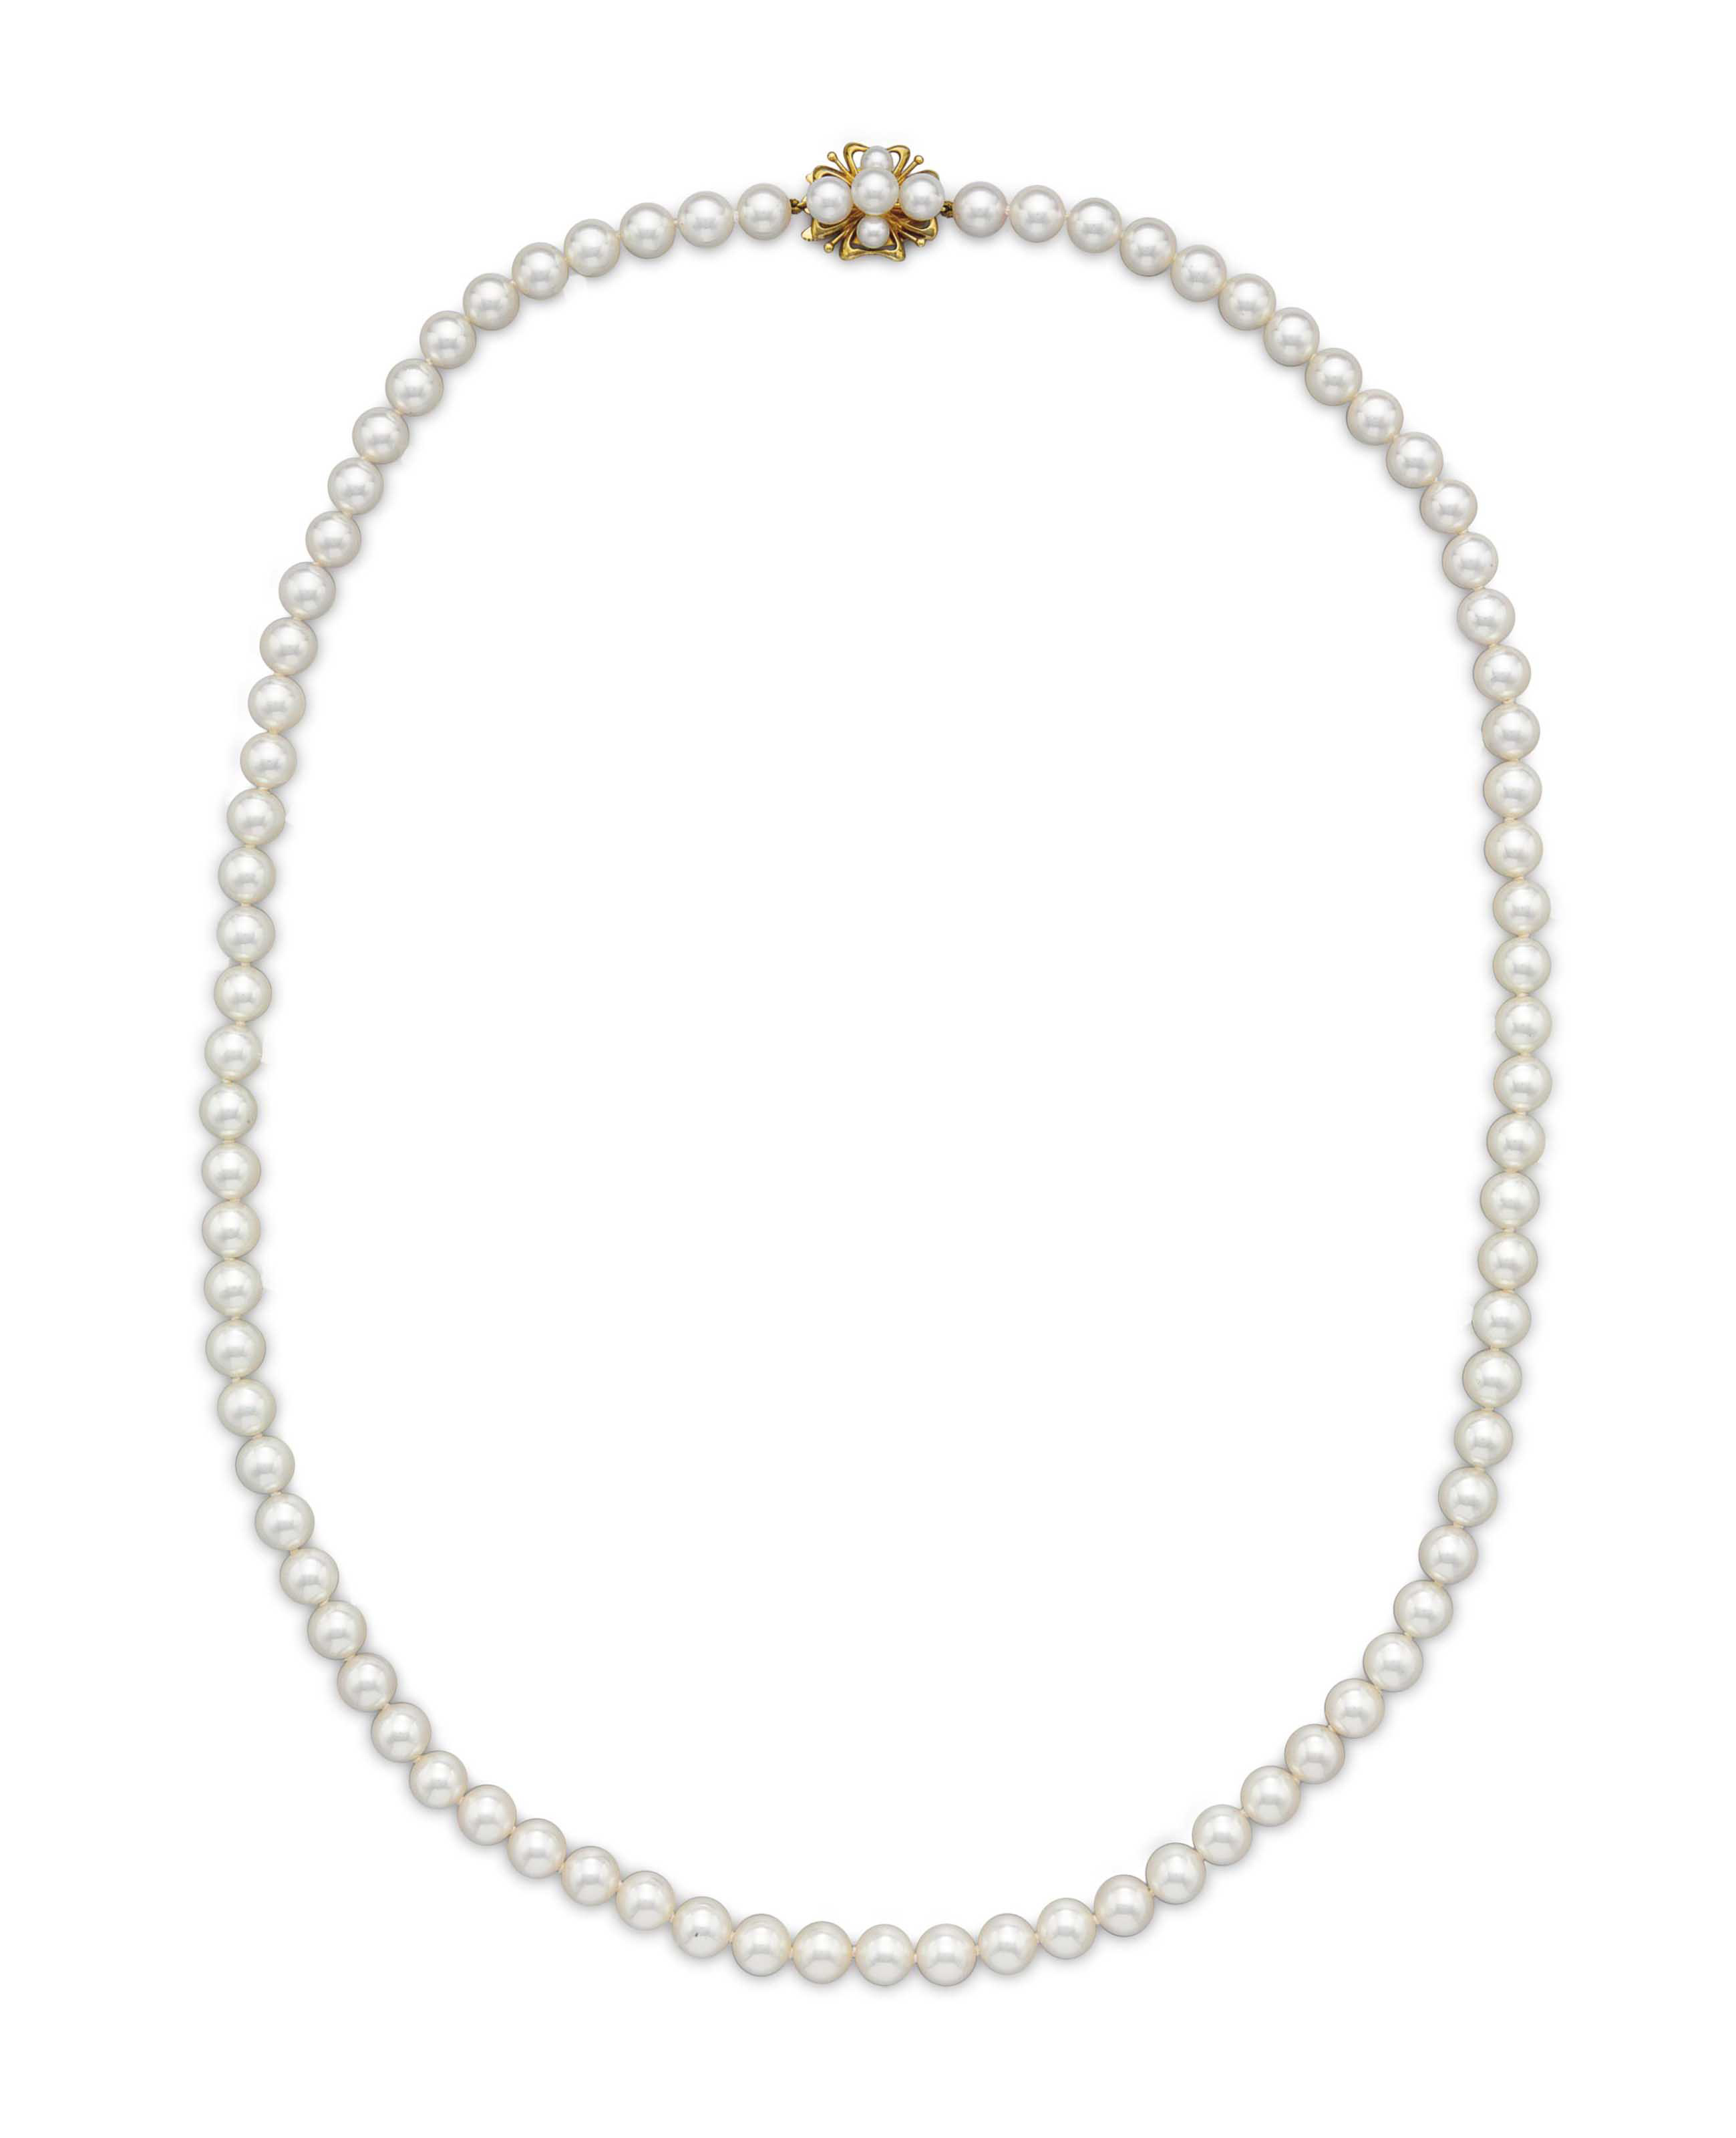 A SINGLE-STRAND CULTURED PEARL NECKLACE, BY MIKIMOTO